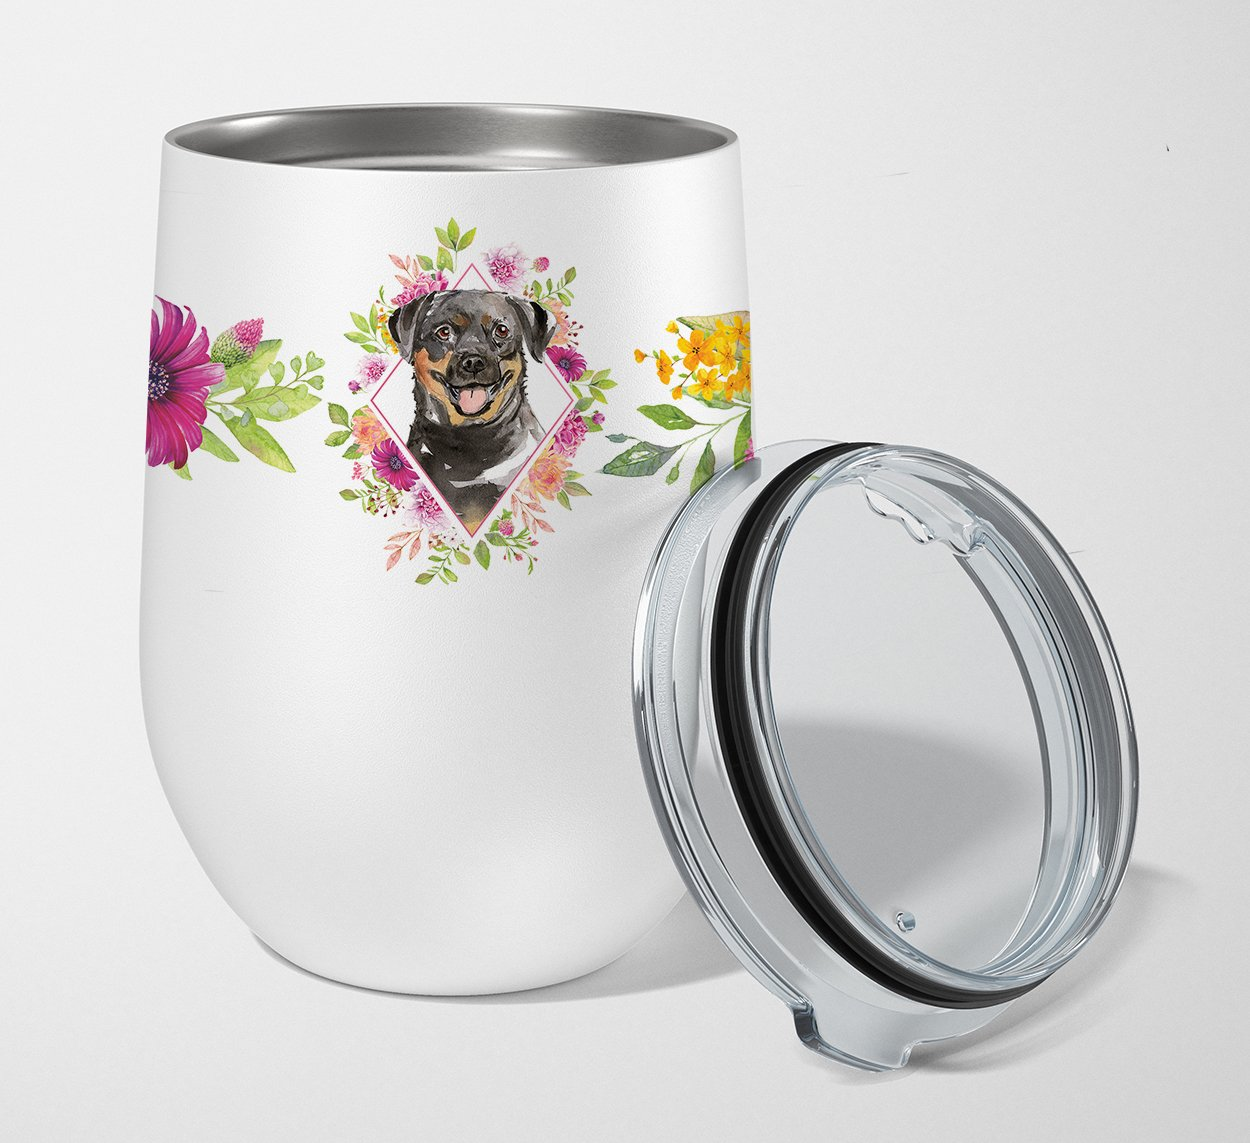 Rottweiler Pink Flowers Stainless Steel 12 oz Stemless Wine Glass CK4217TBL12 by Caroline's Treasures